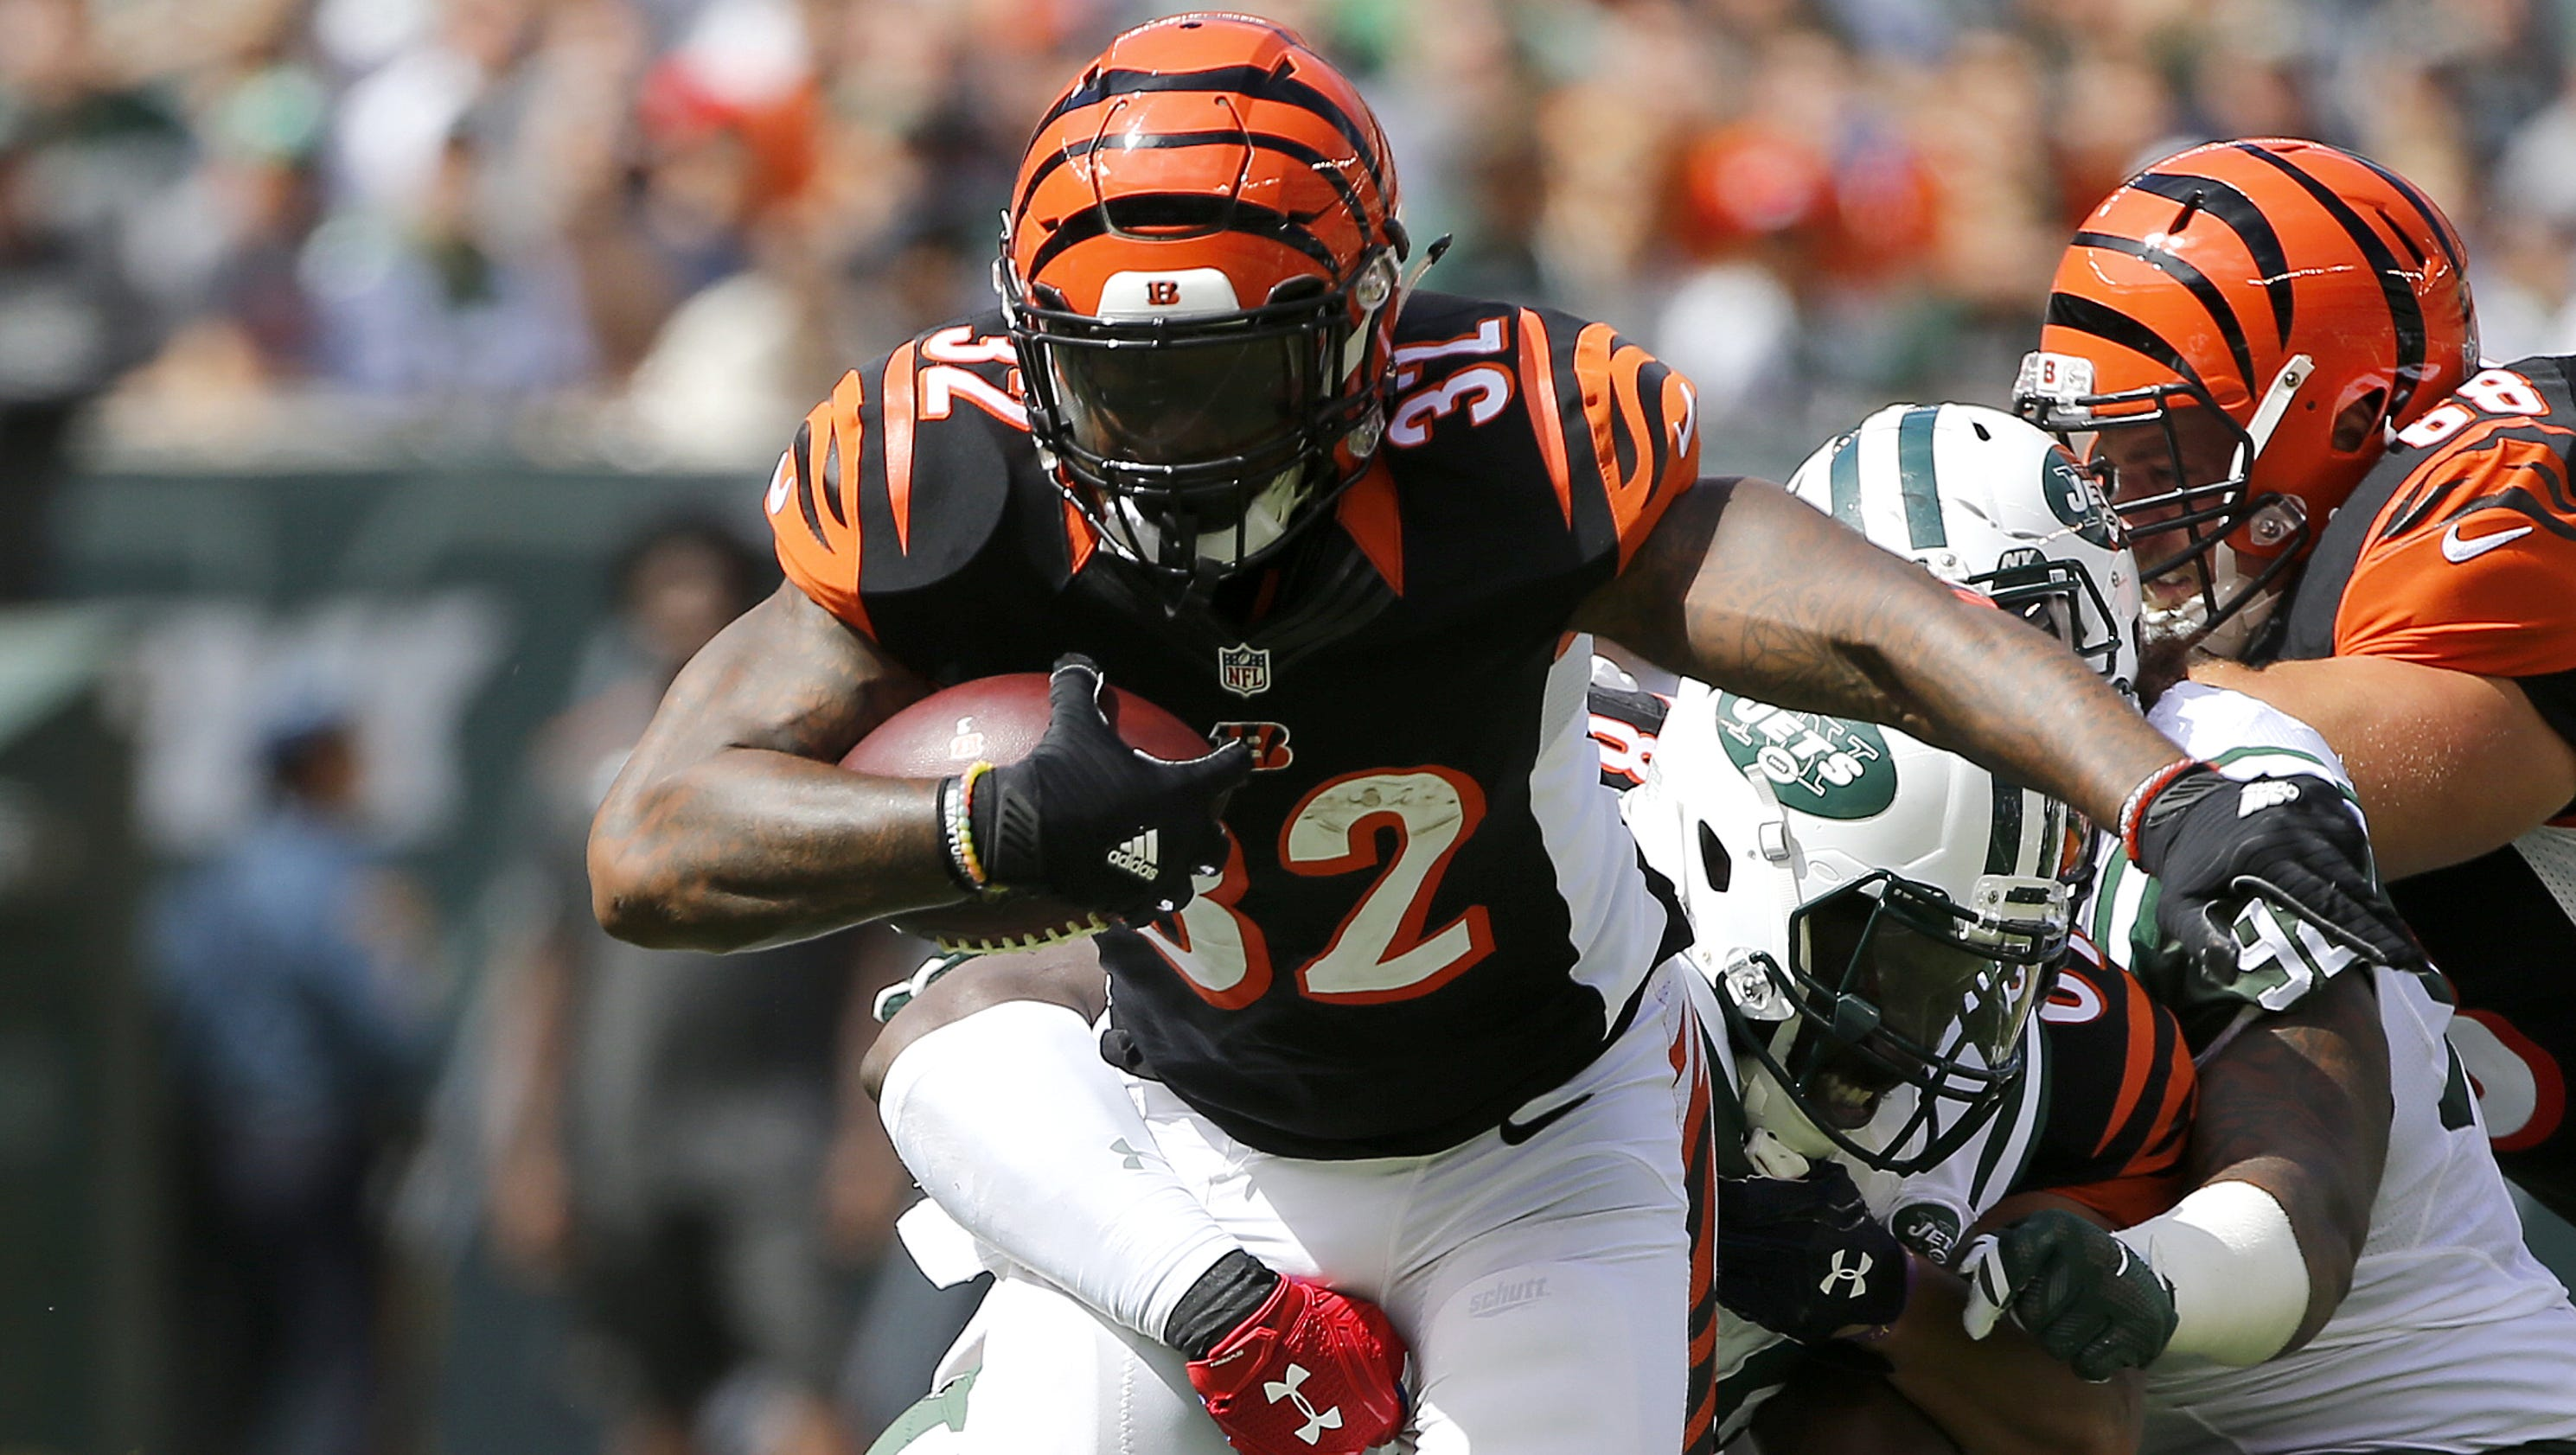 baeef97fe ... Limited White Jersey Nike NFL Los Angeles Rams Vapor Untouchable Road  Doc 10 takeaways from Bengals-Jets Cincinnati Bengals tackle Andrew  Whitworth (77) ...